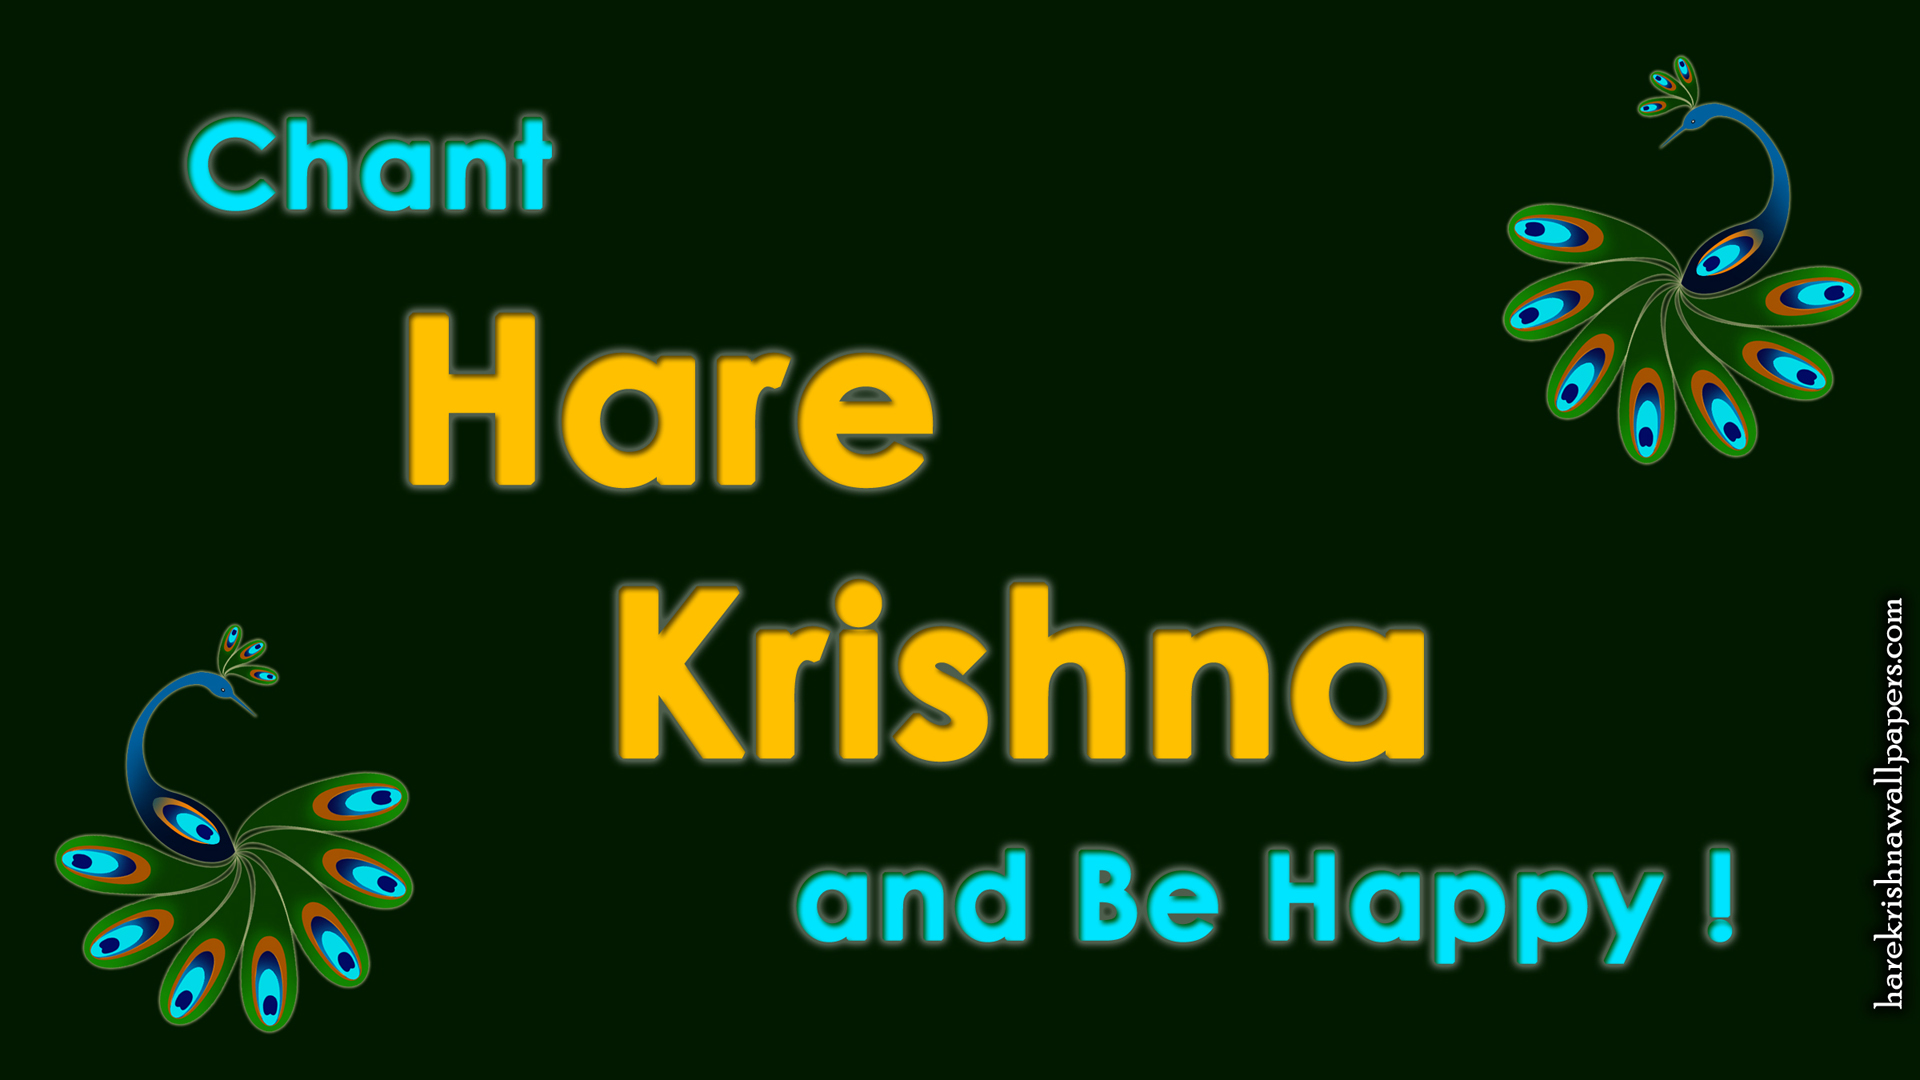 Chant Hare Krishna and be happy Wallpaper (006) Size 1920x1080 Download